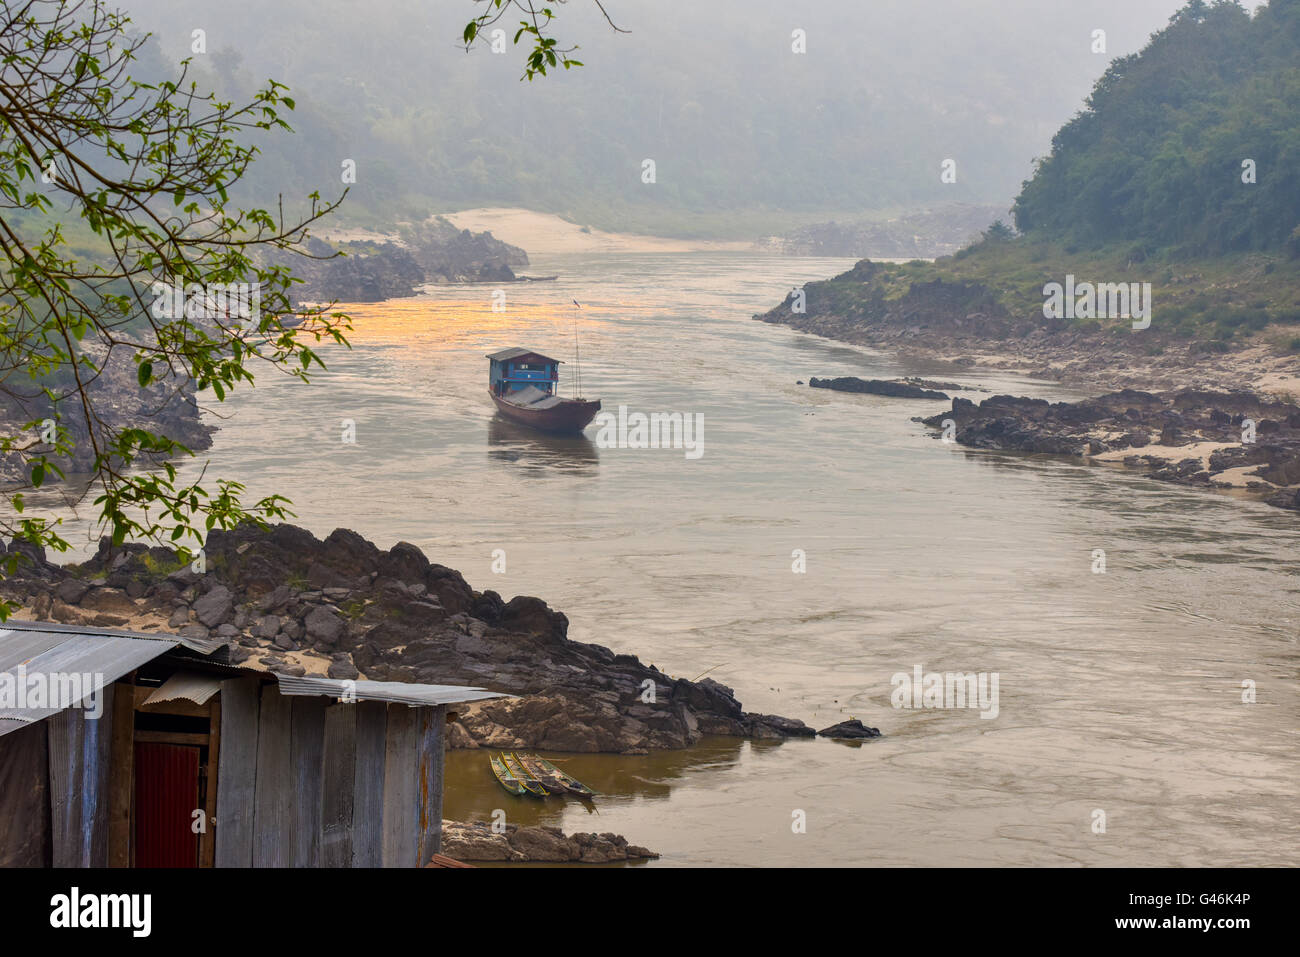 Boat on the Mekong rivers Laos - Stock Image